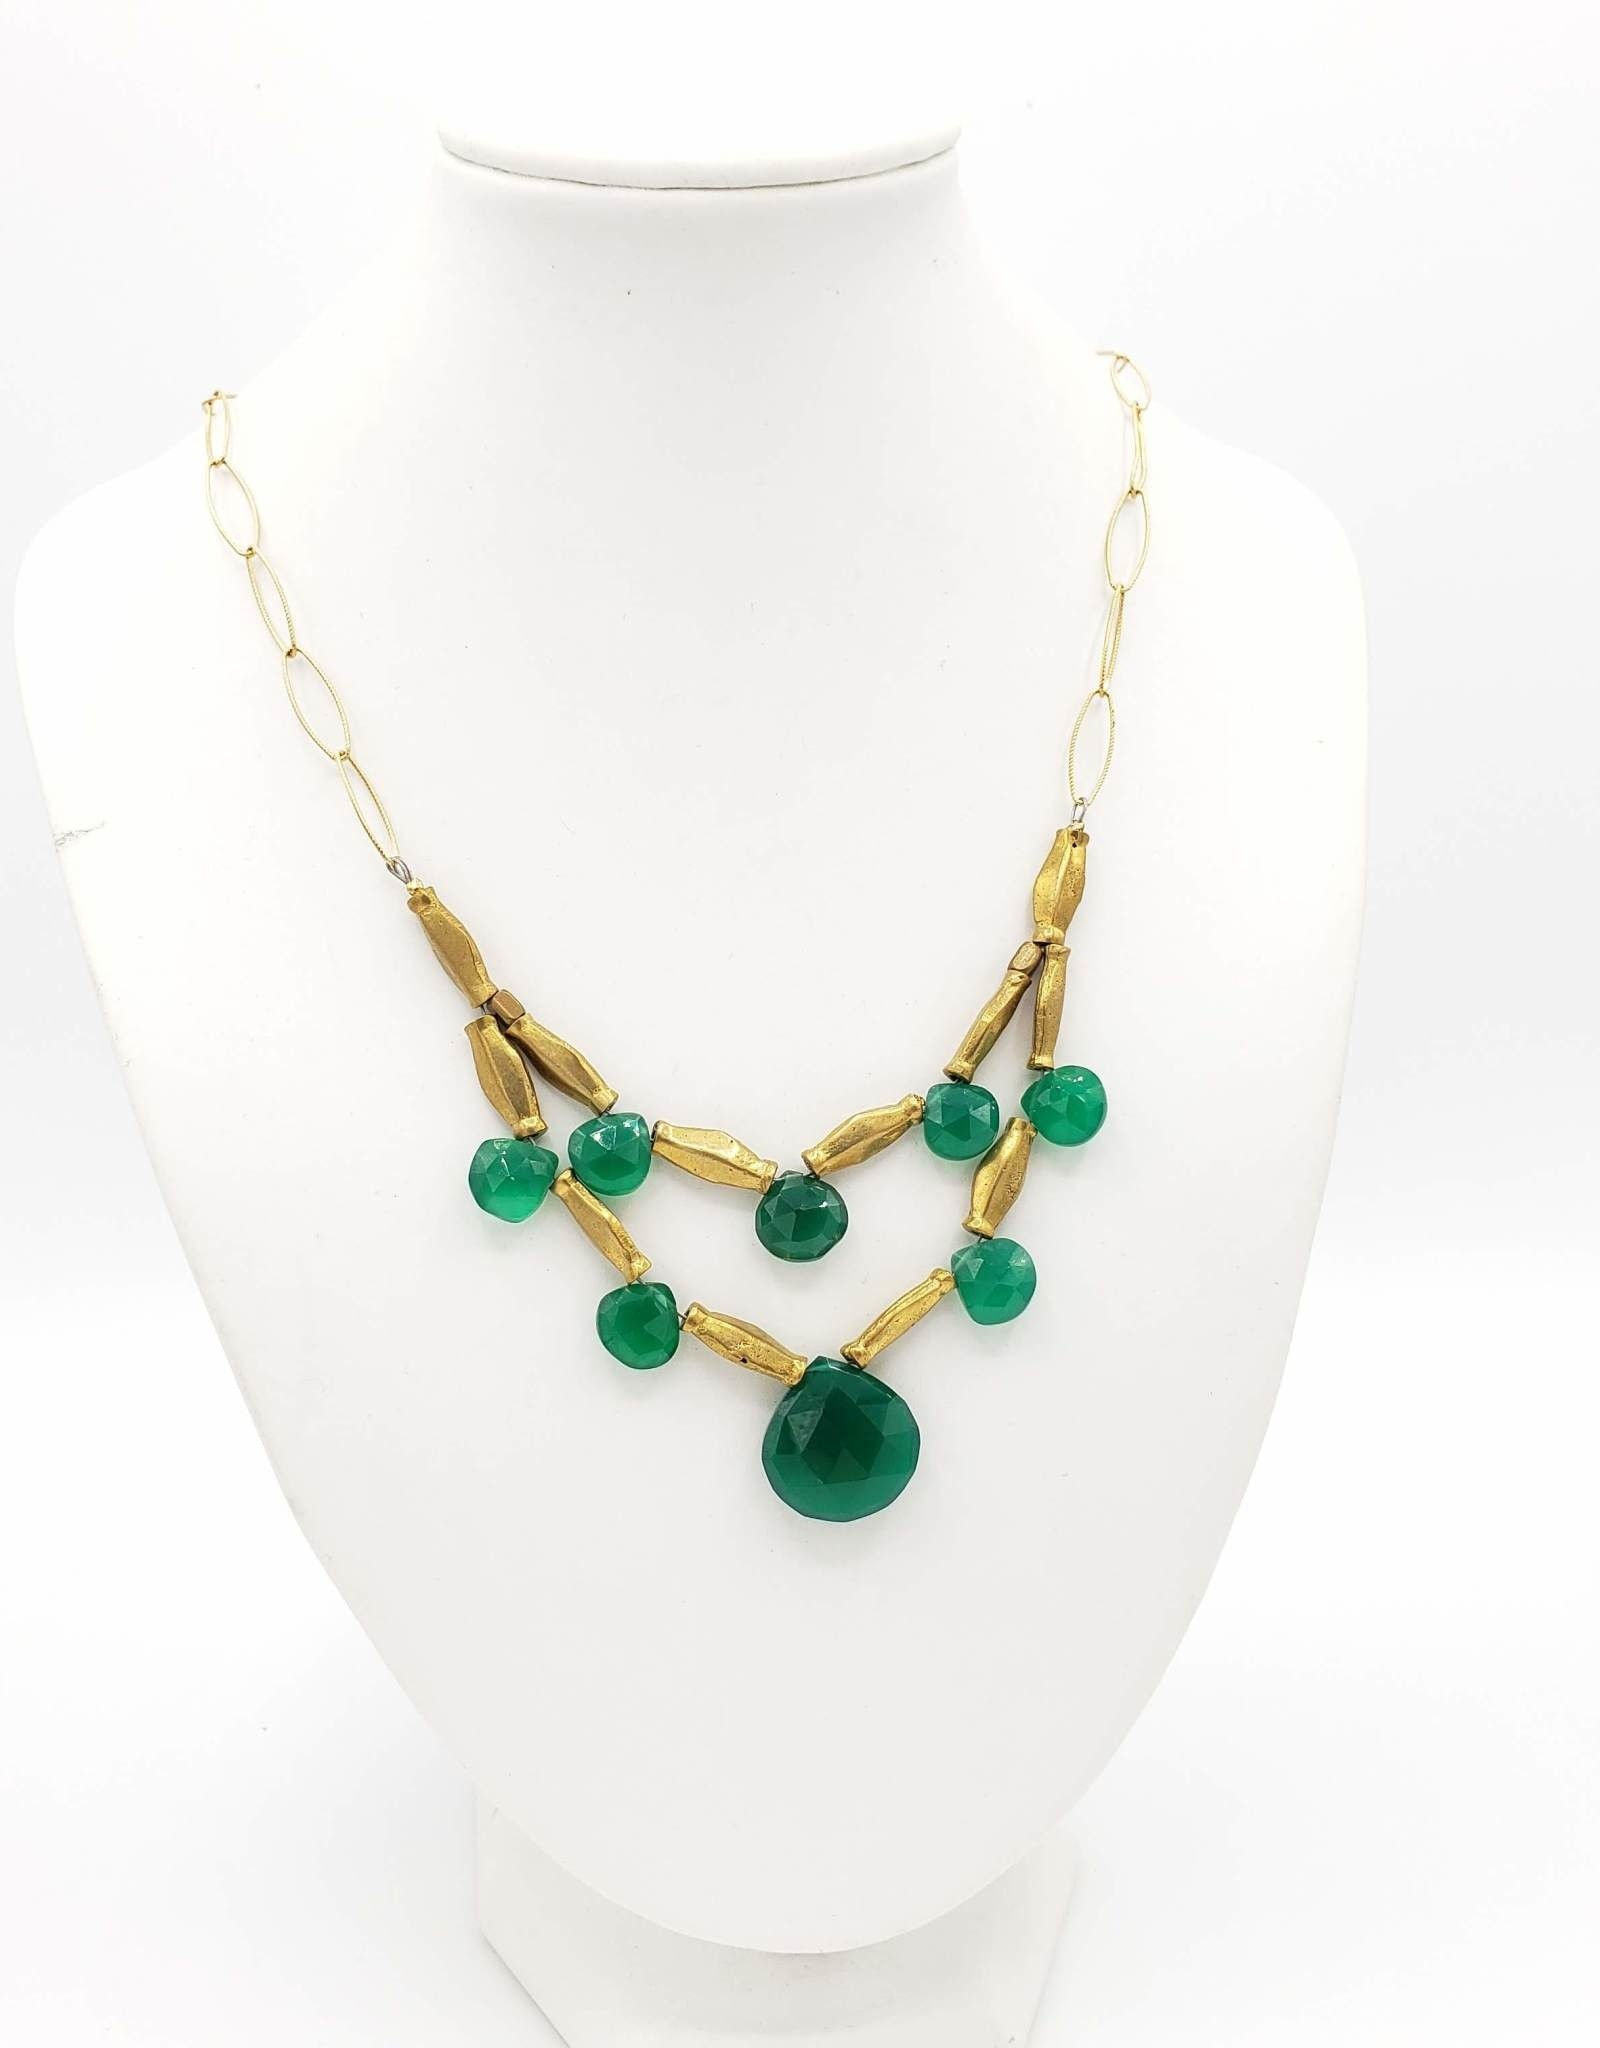 David Aubrey Green Jade 2-tiered Teardrop Necklace, large center stone